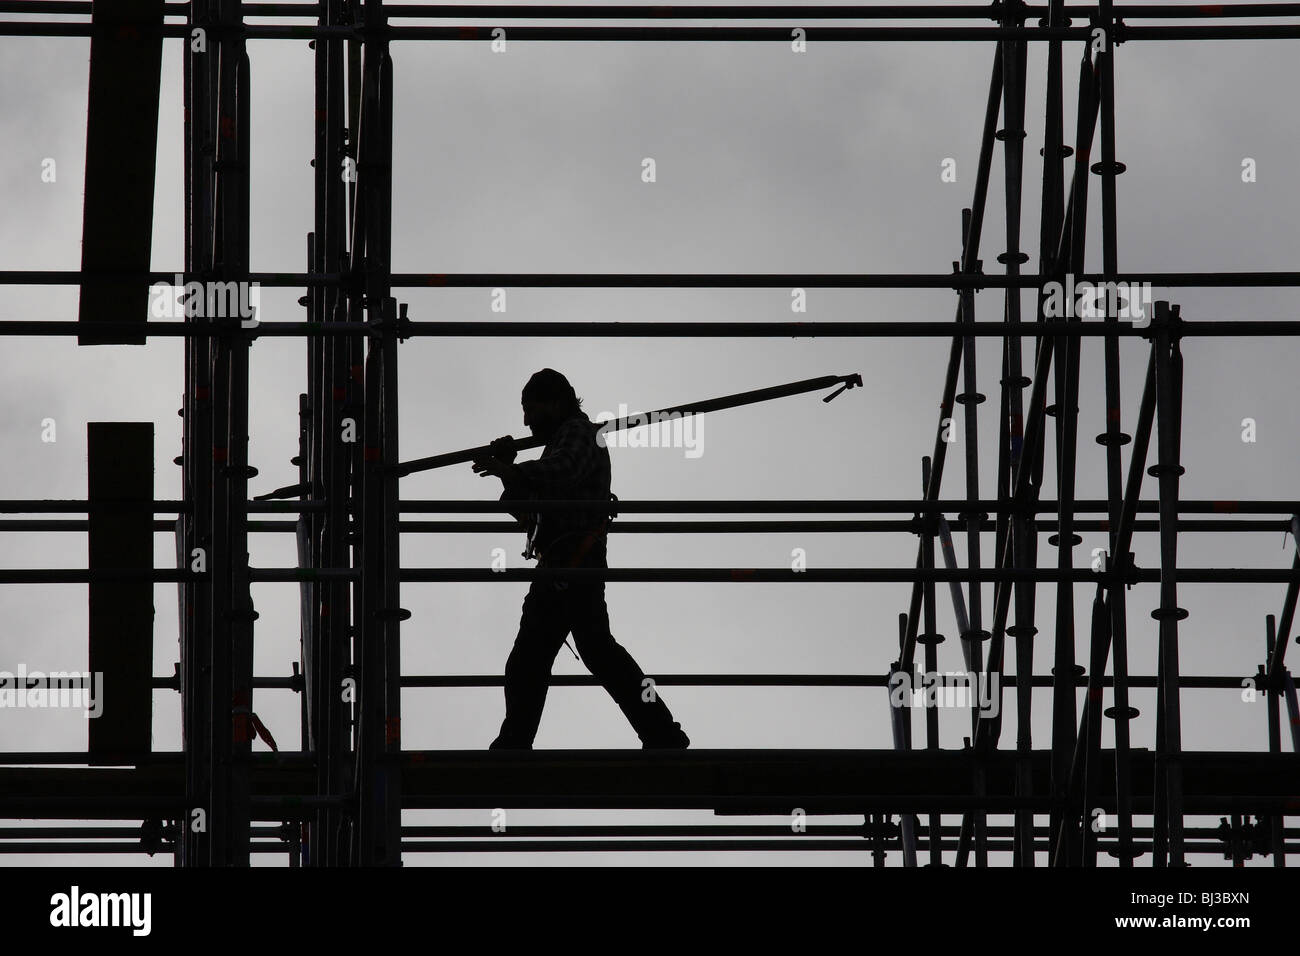 Silhouette of a workman on a scaffolding - Stock Image